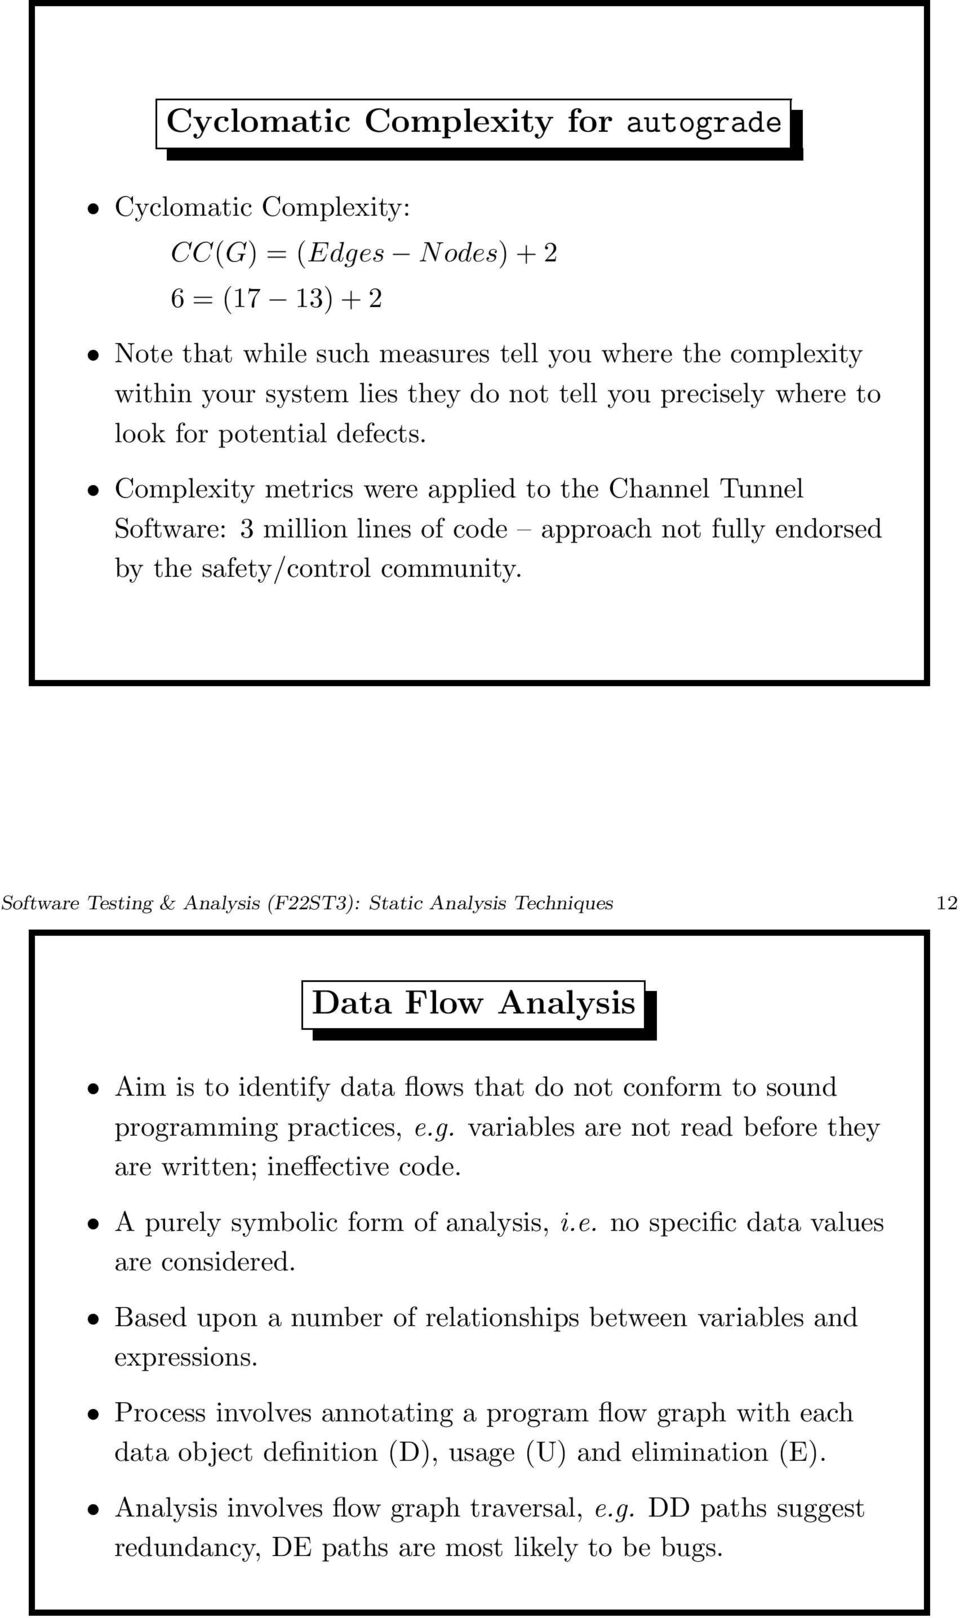 Complexity metrics were applied to the Channel Tunnel Software: 3 million lines of code approach not fully endorsed by the safety/control community.